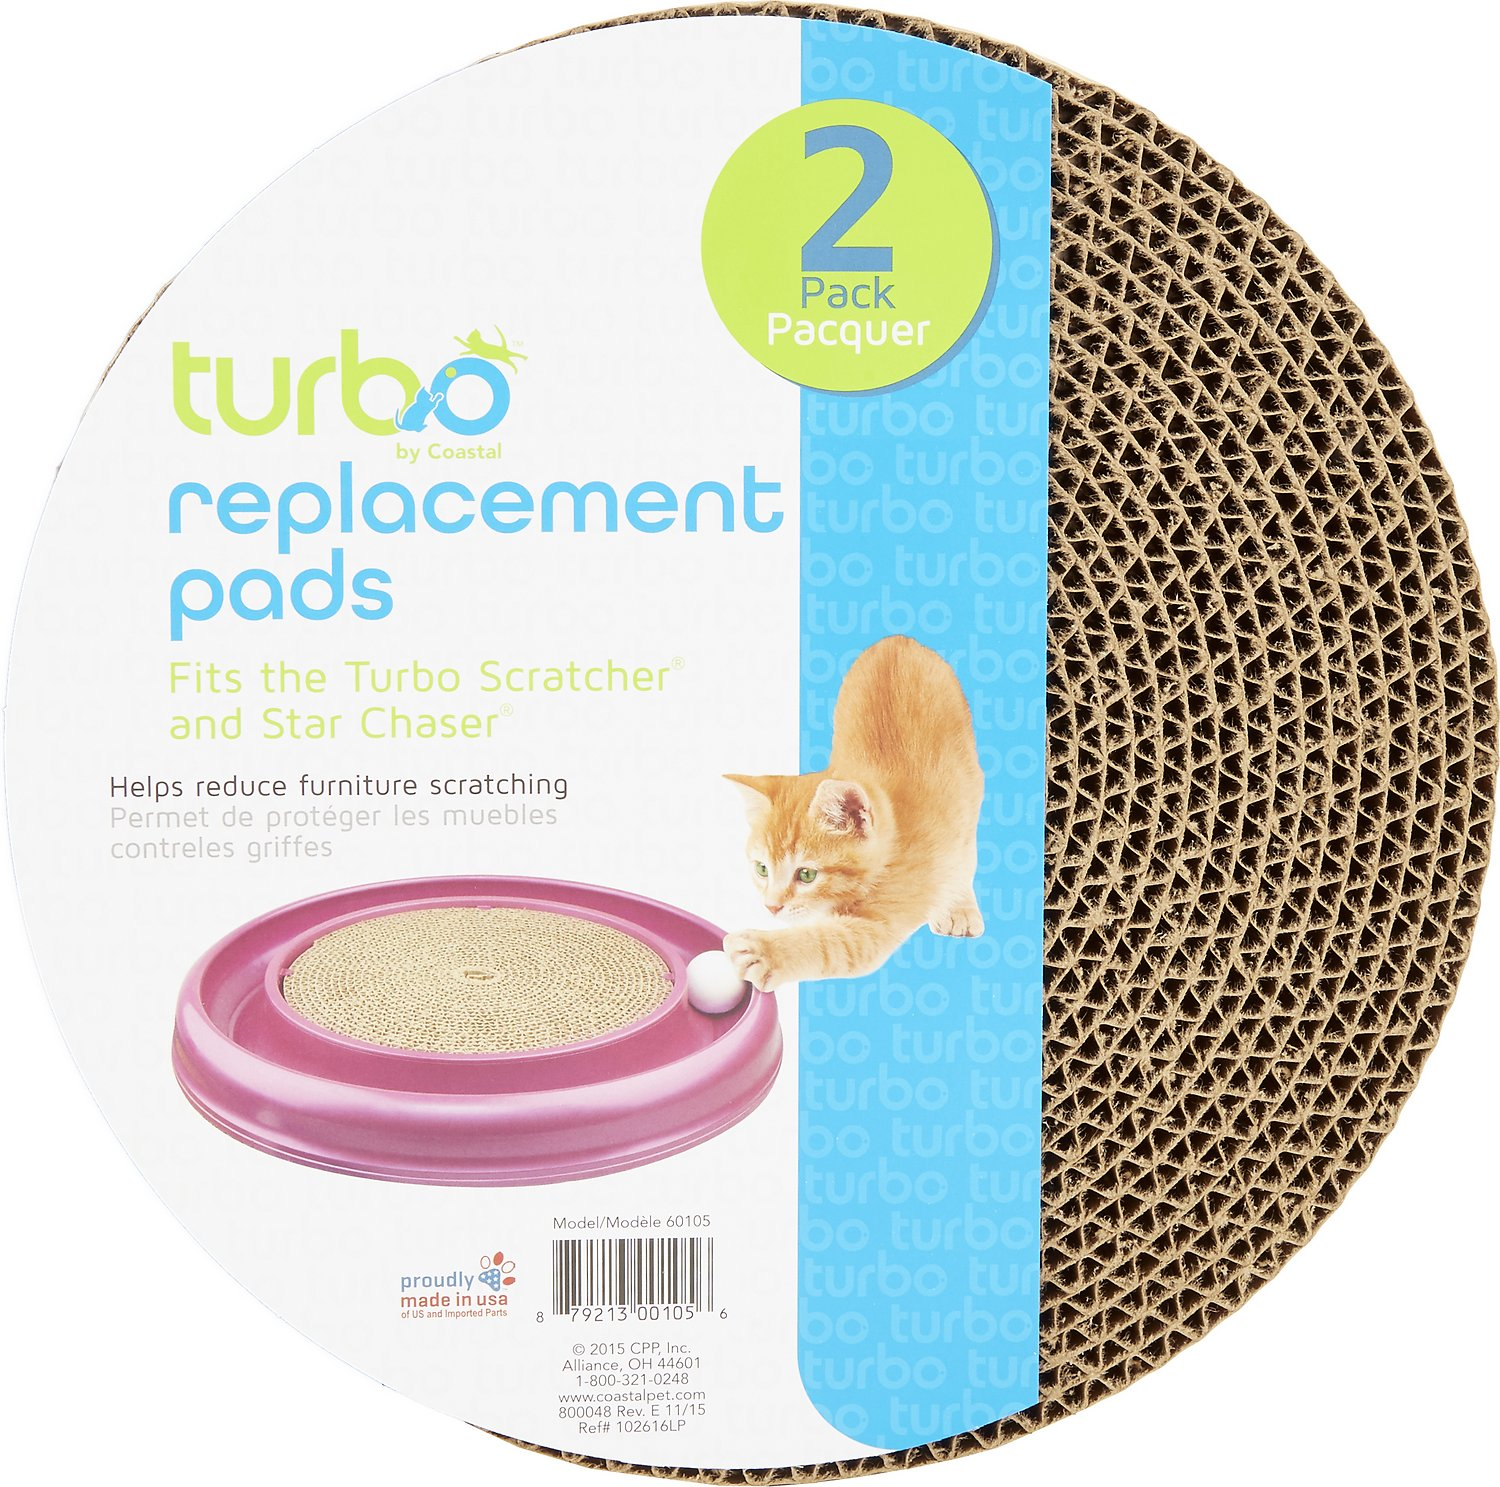 Turbo Scratcher Cat Toy Replacement Pads Image